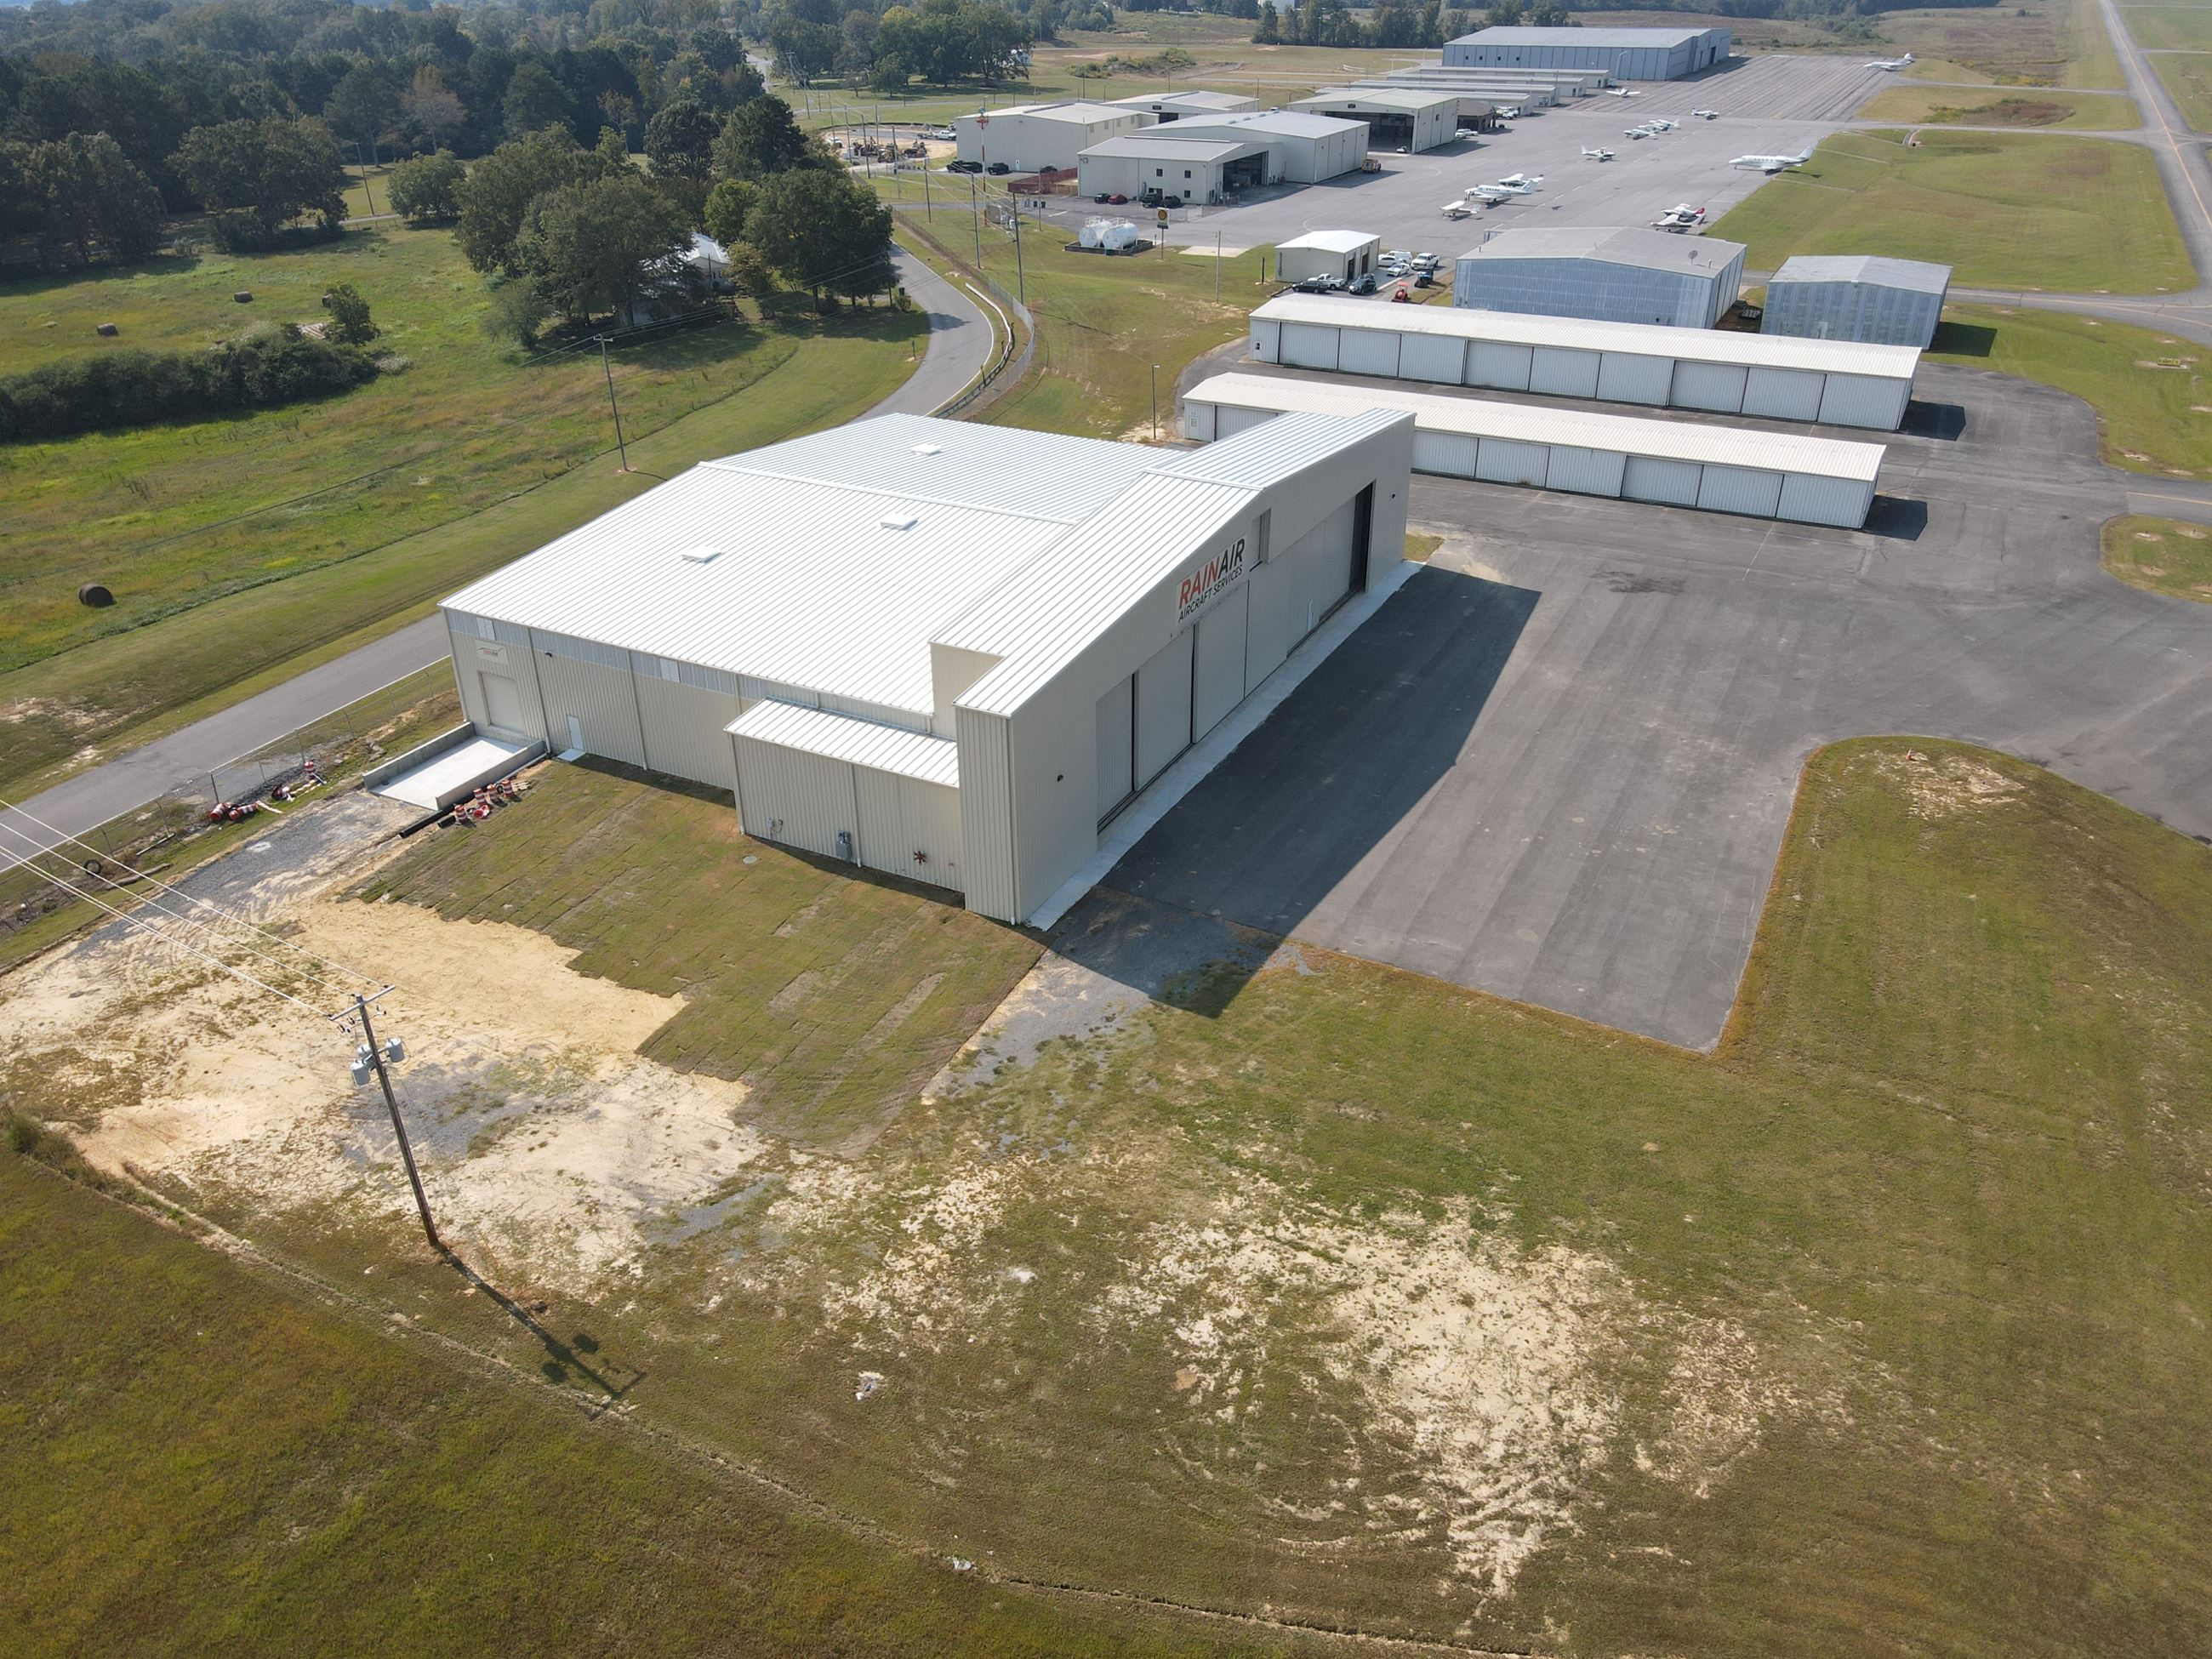 Aerial Photo of new military aircraft hangar at Albertville Regional Airport